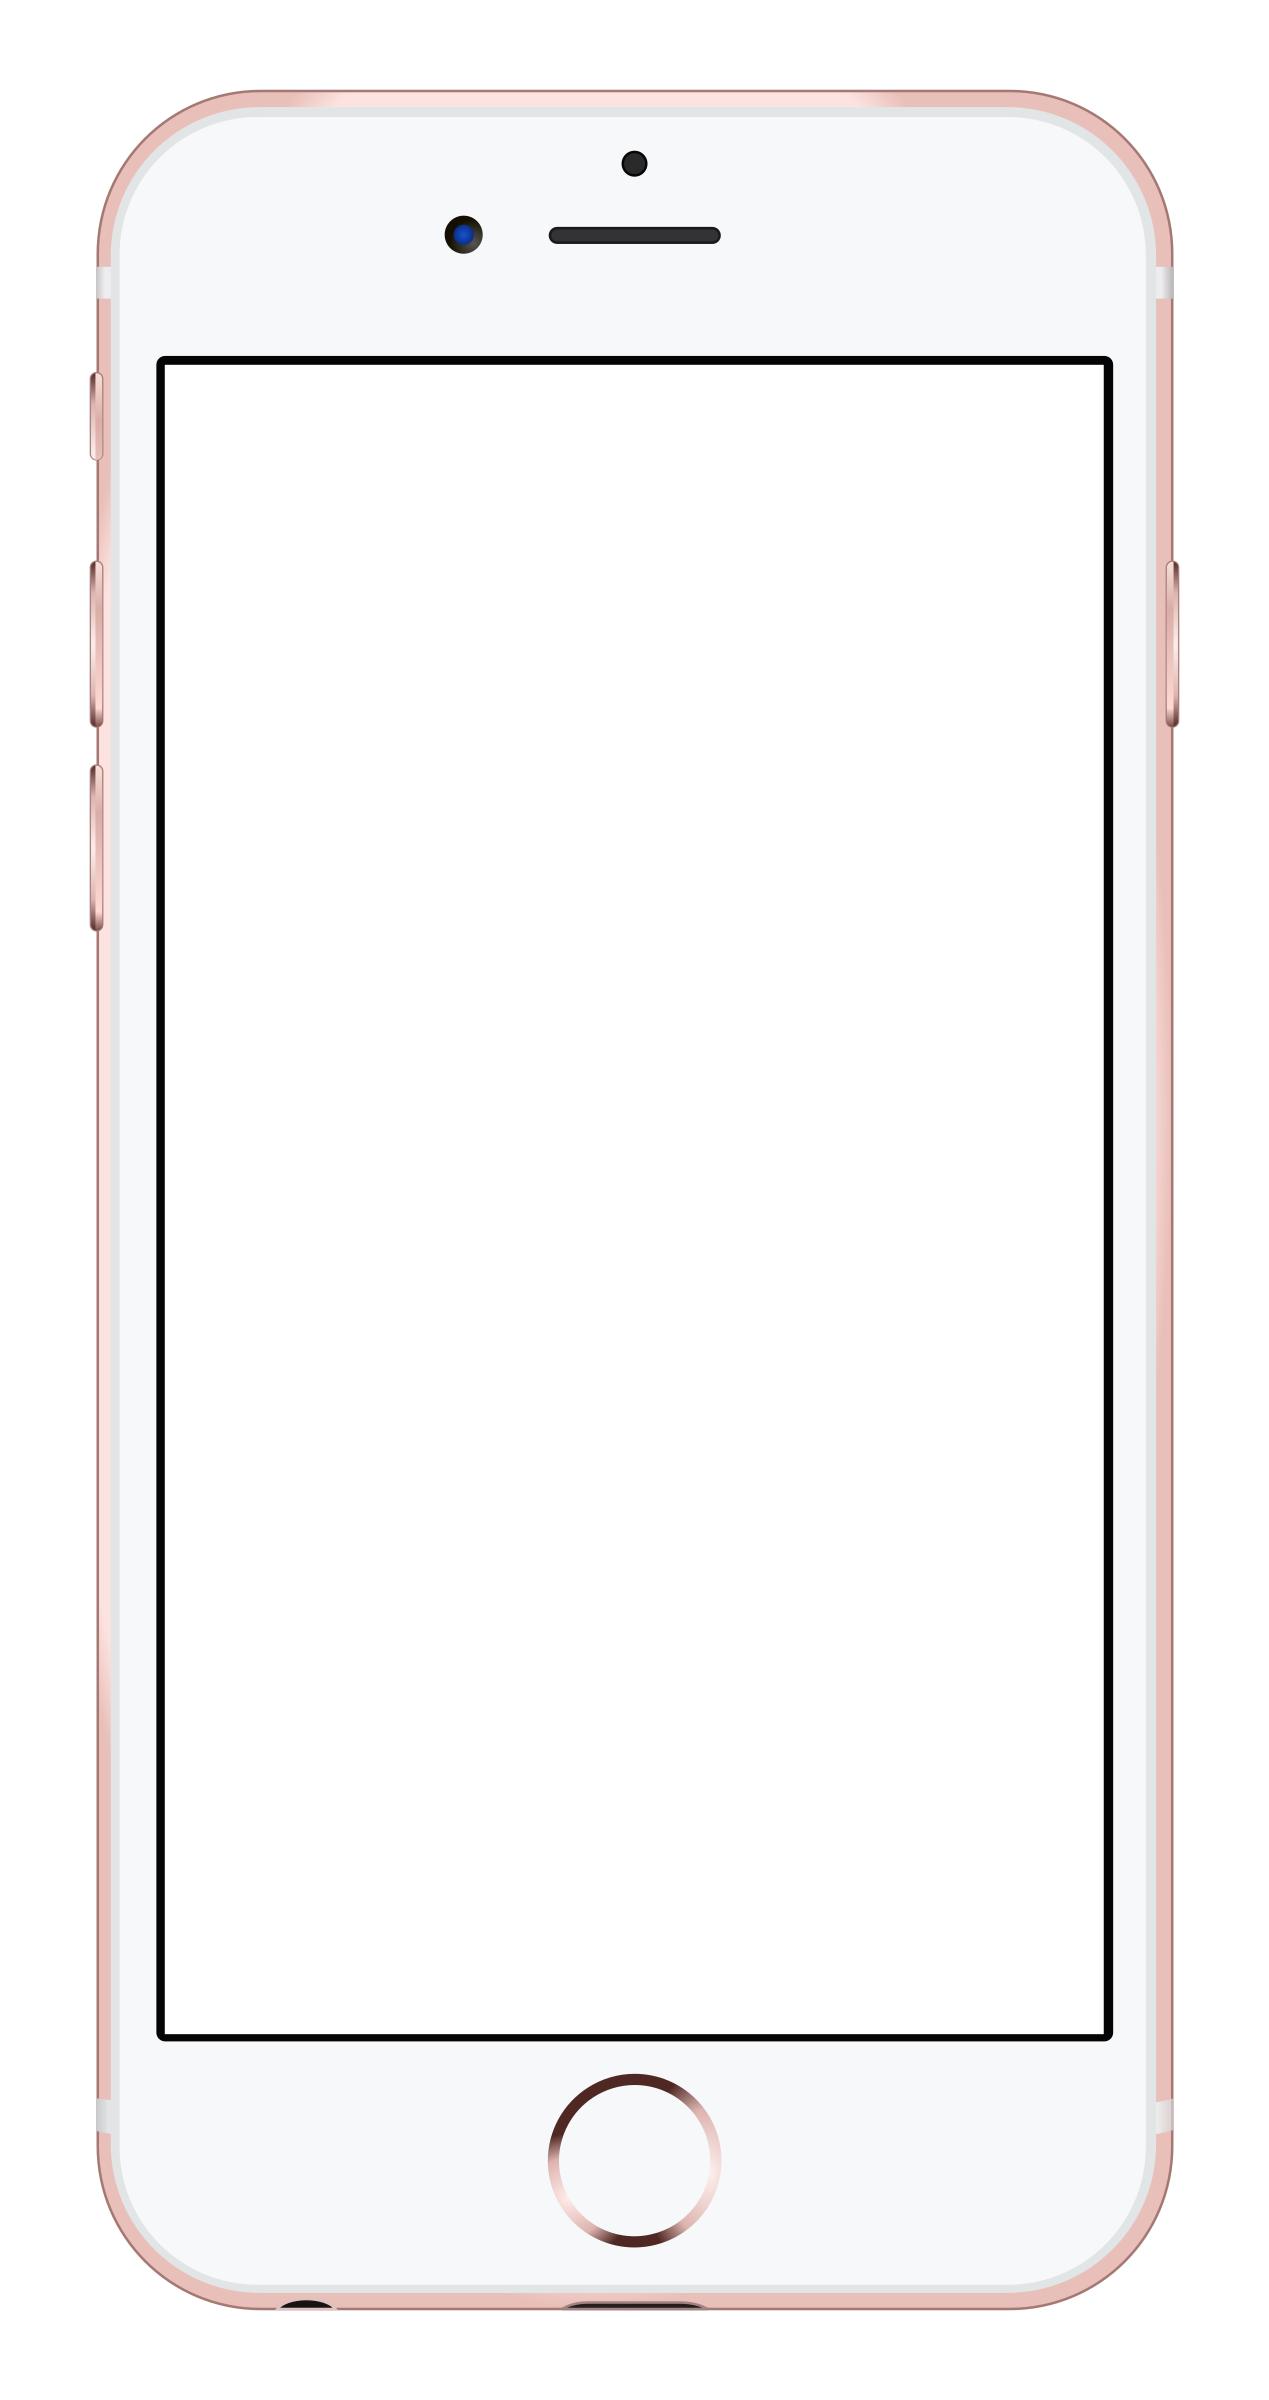 Clipart - iPhone 6s Rose Gold